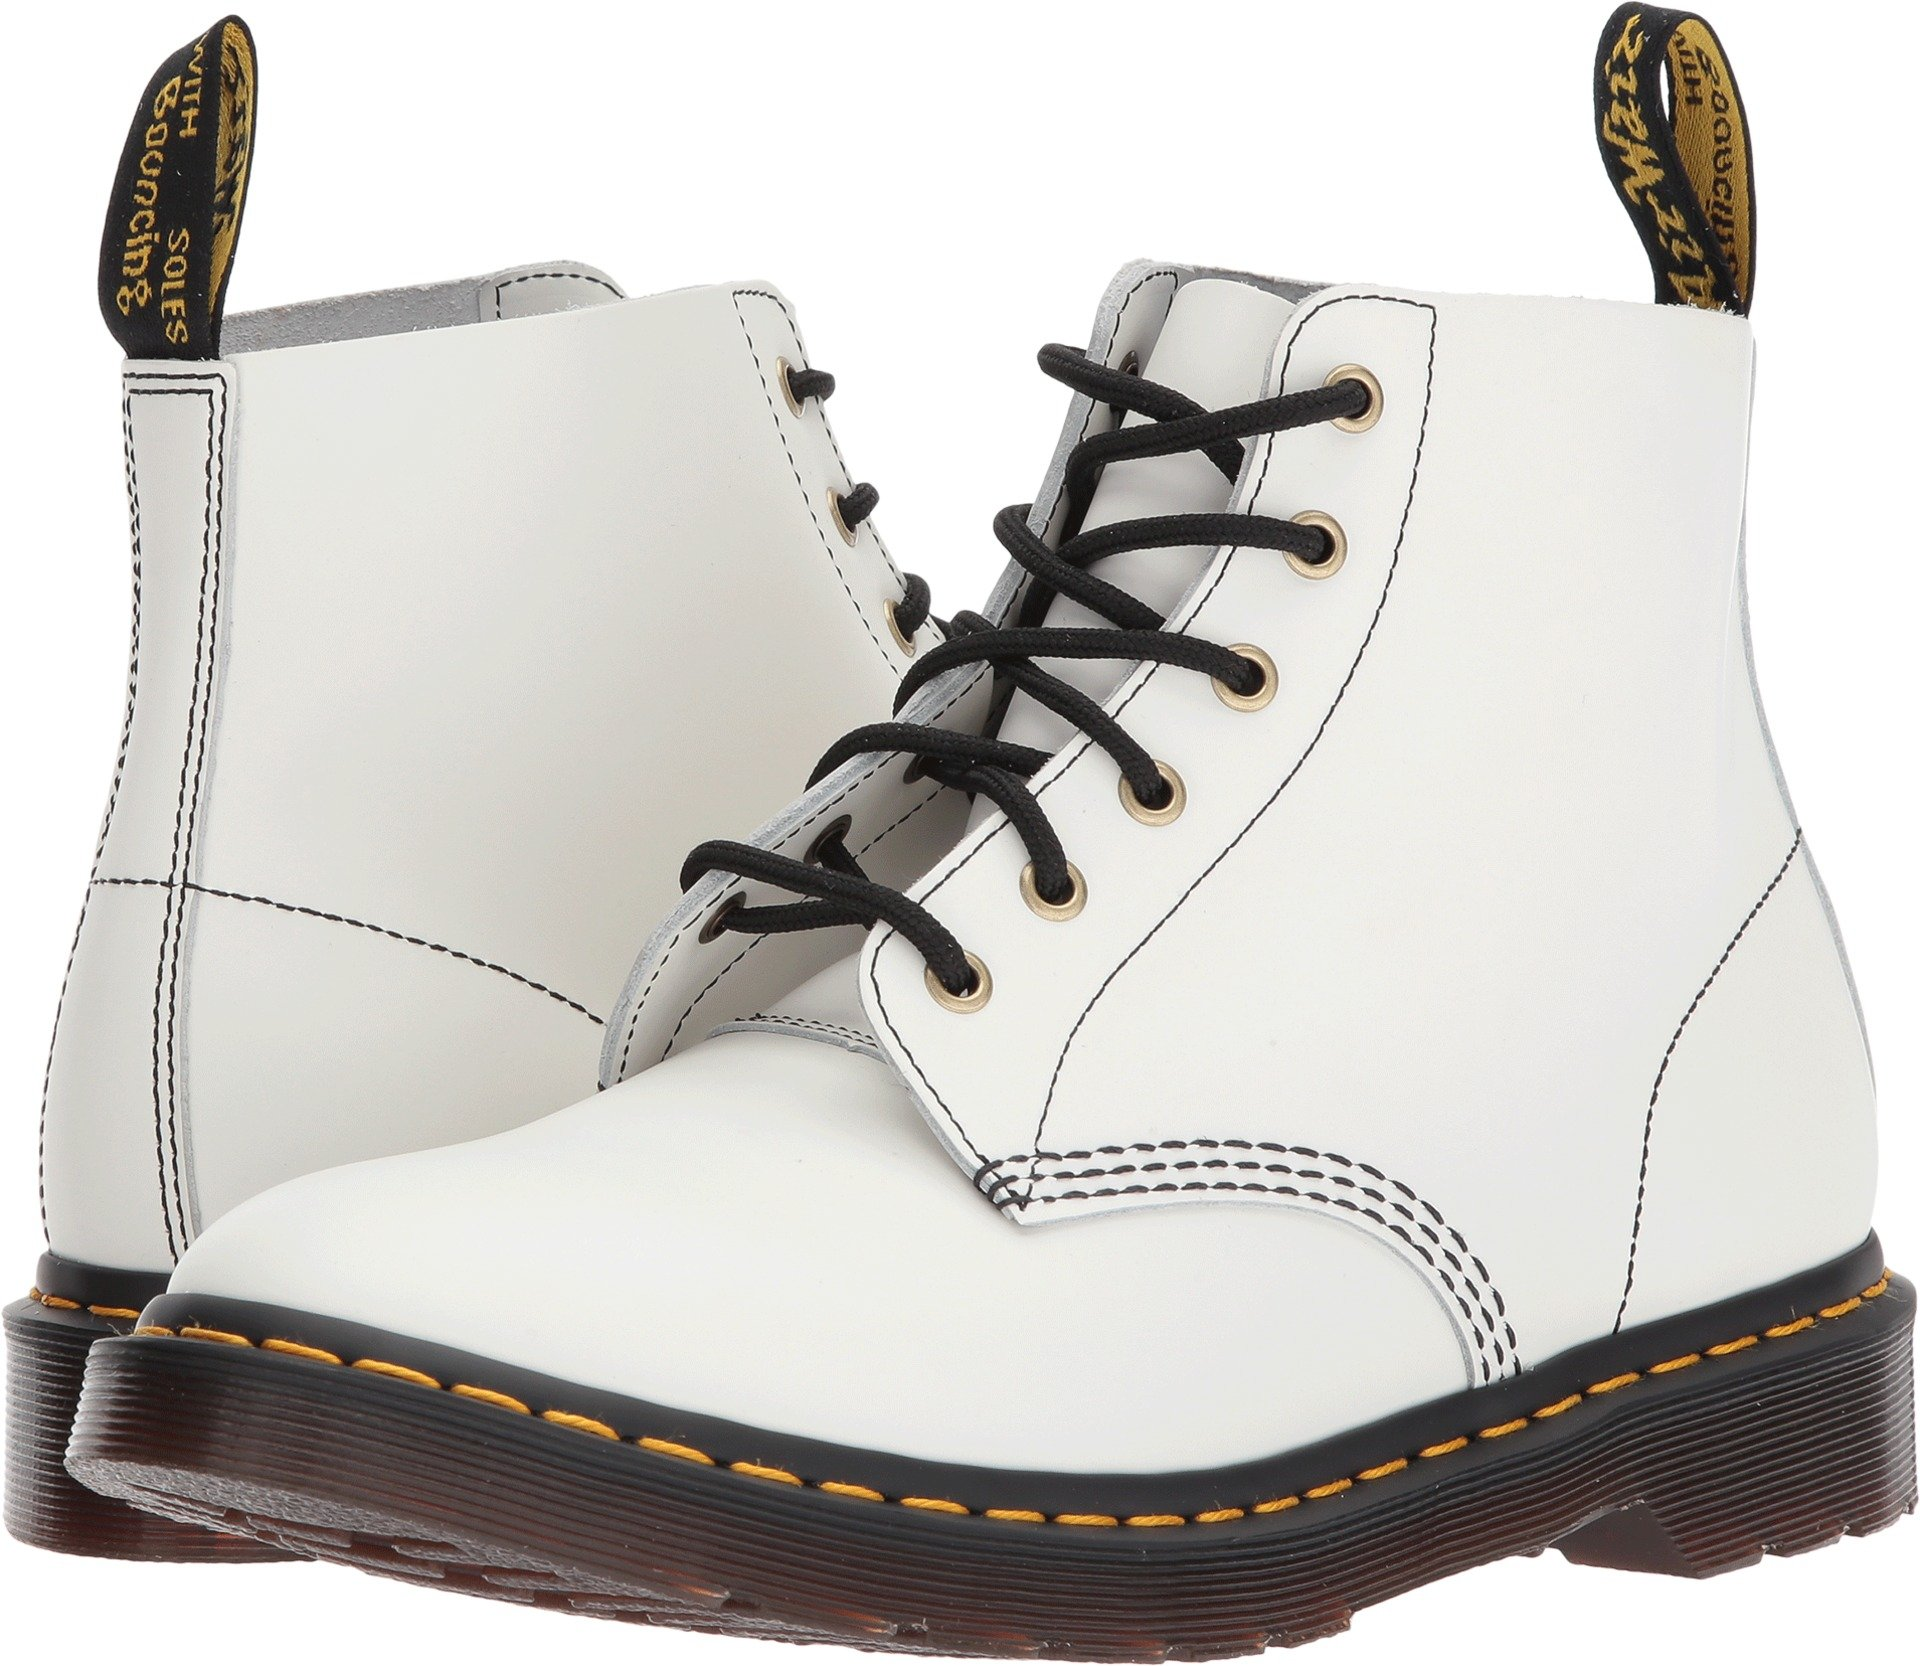 Dr. Martens Men's 101 Arc Smooth 6-Eye Boots, White, 10 M UK, 11 M US by Dr. Martens